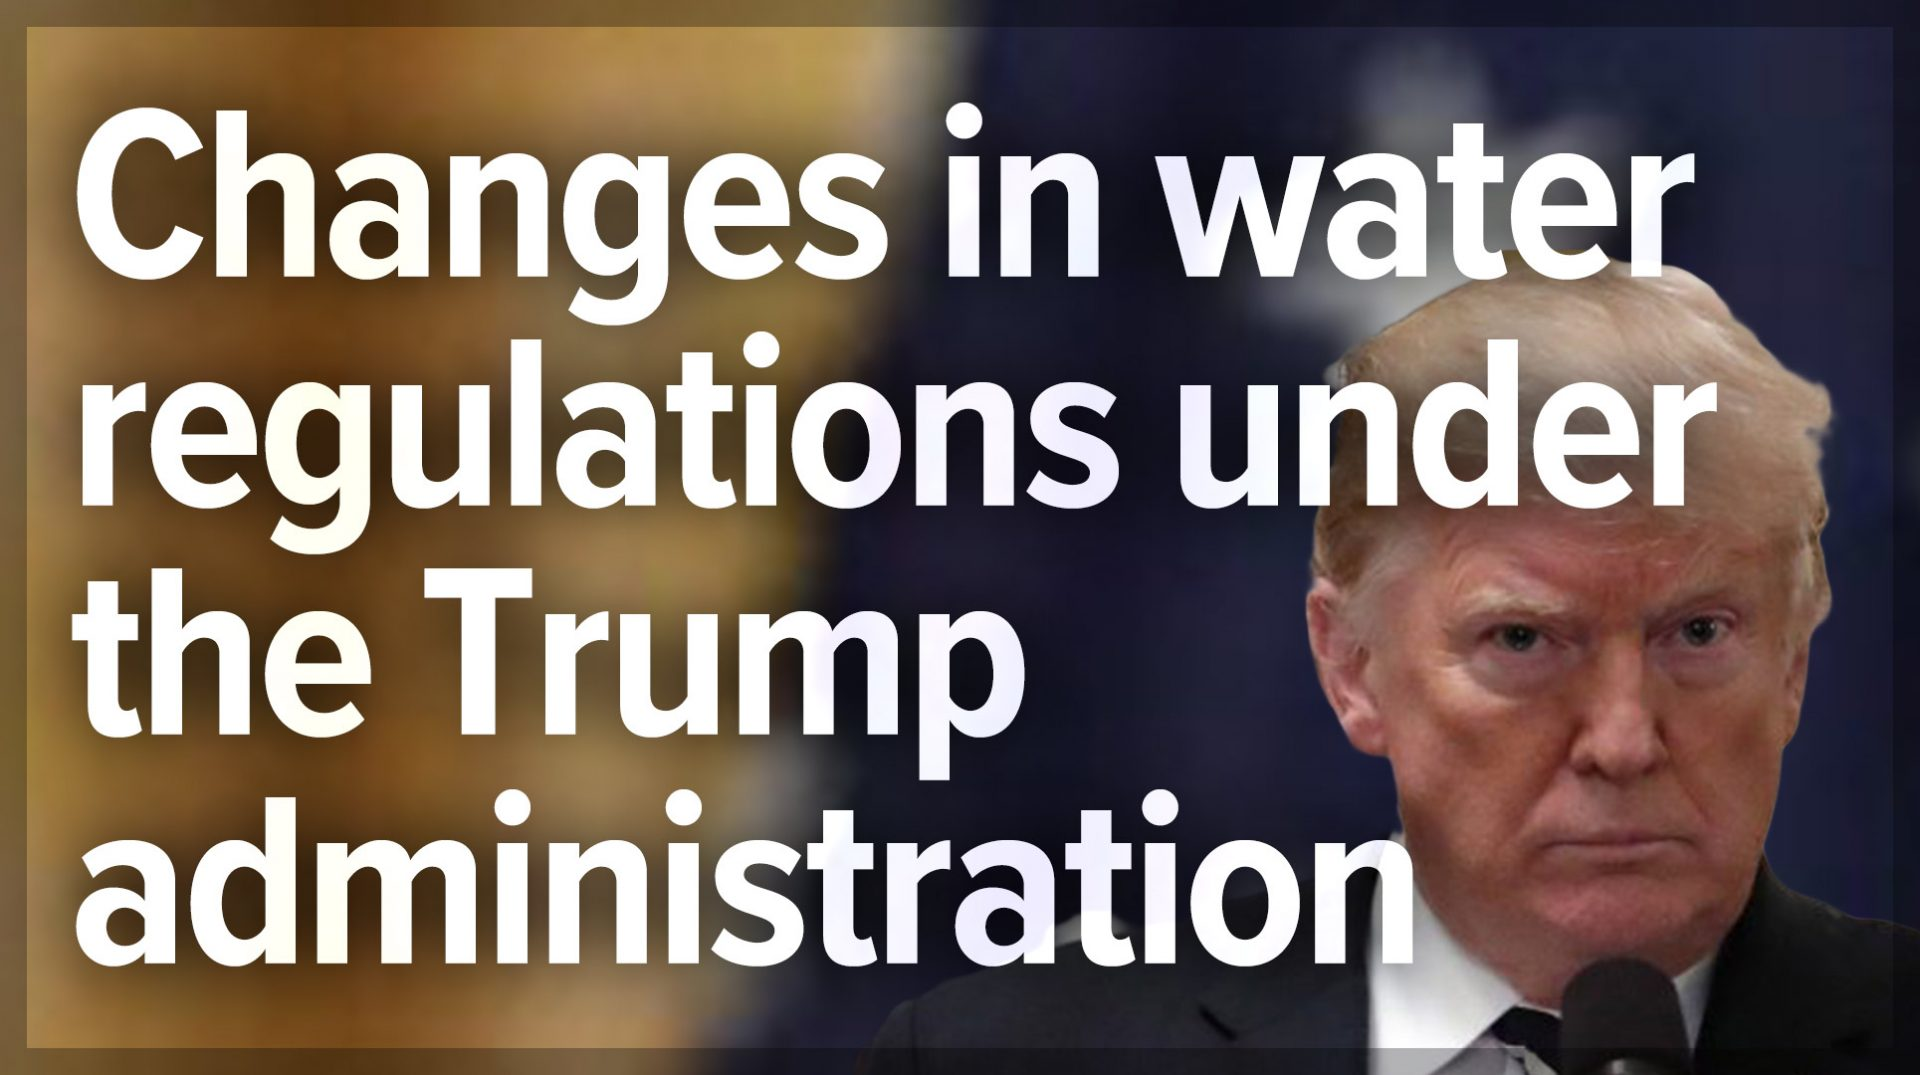 Changes in water regulations under the Trump administration